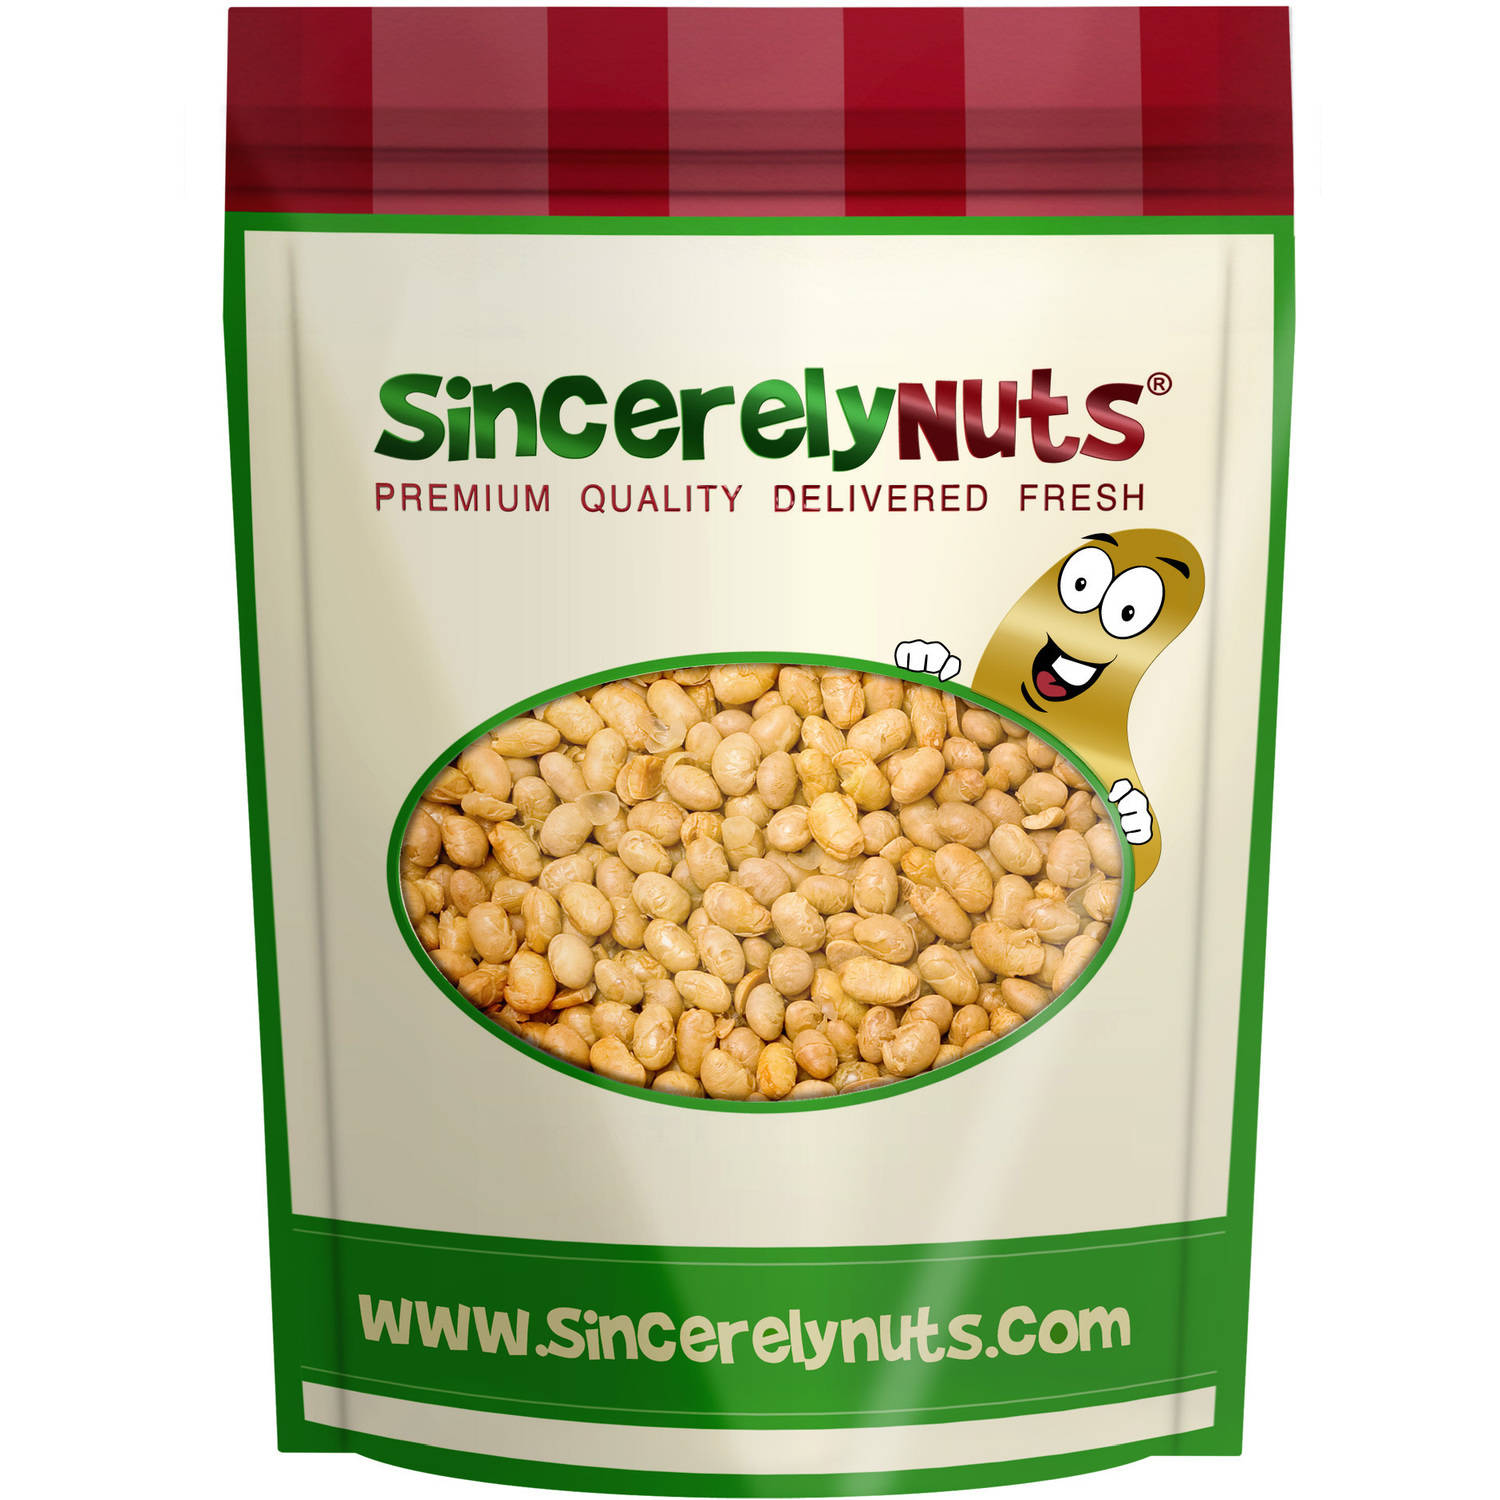 Sincerely Nuts Soybeans Roasted Unsalted, 5 LB Bag by Sincerely Nuts